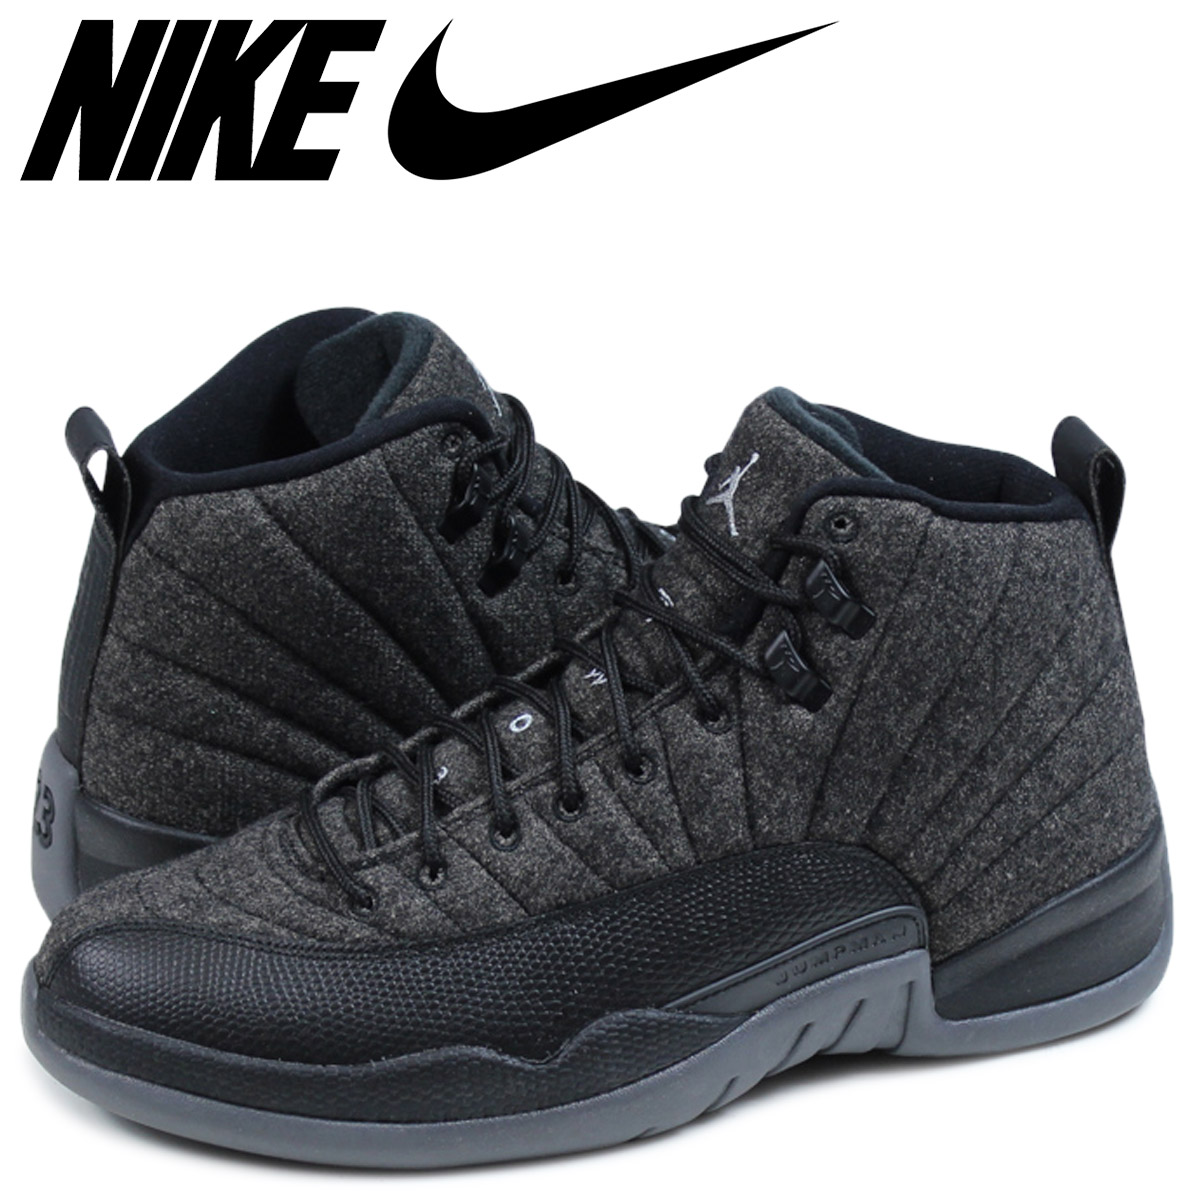 4cb1a29e289 Nike NIKE Air Jordan sneakers men JORDAN AIR JORDAN 12 RETRO WOOL Air Jordan  12 852,627 ...